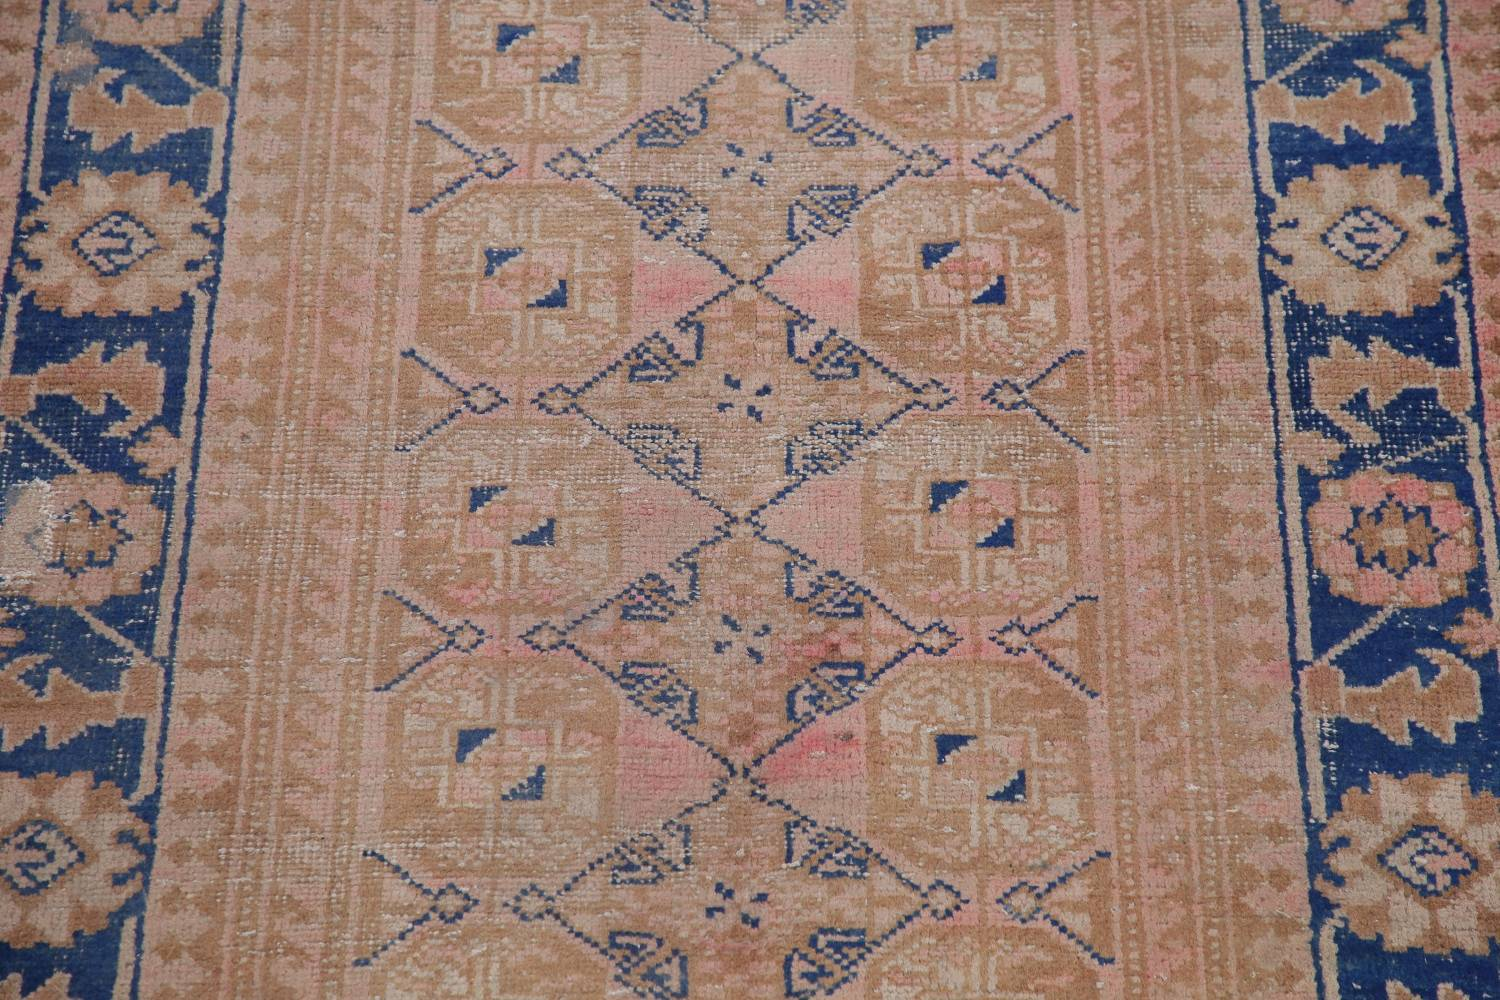 Antique Muted Distressed Malayer Persian Runner Rug 4x11 image 4